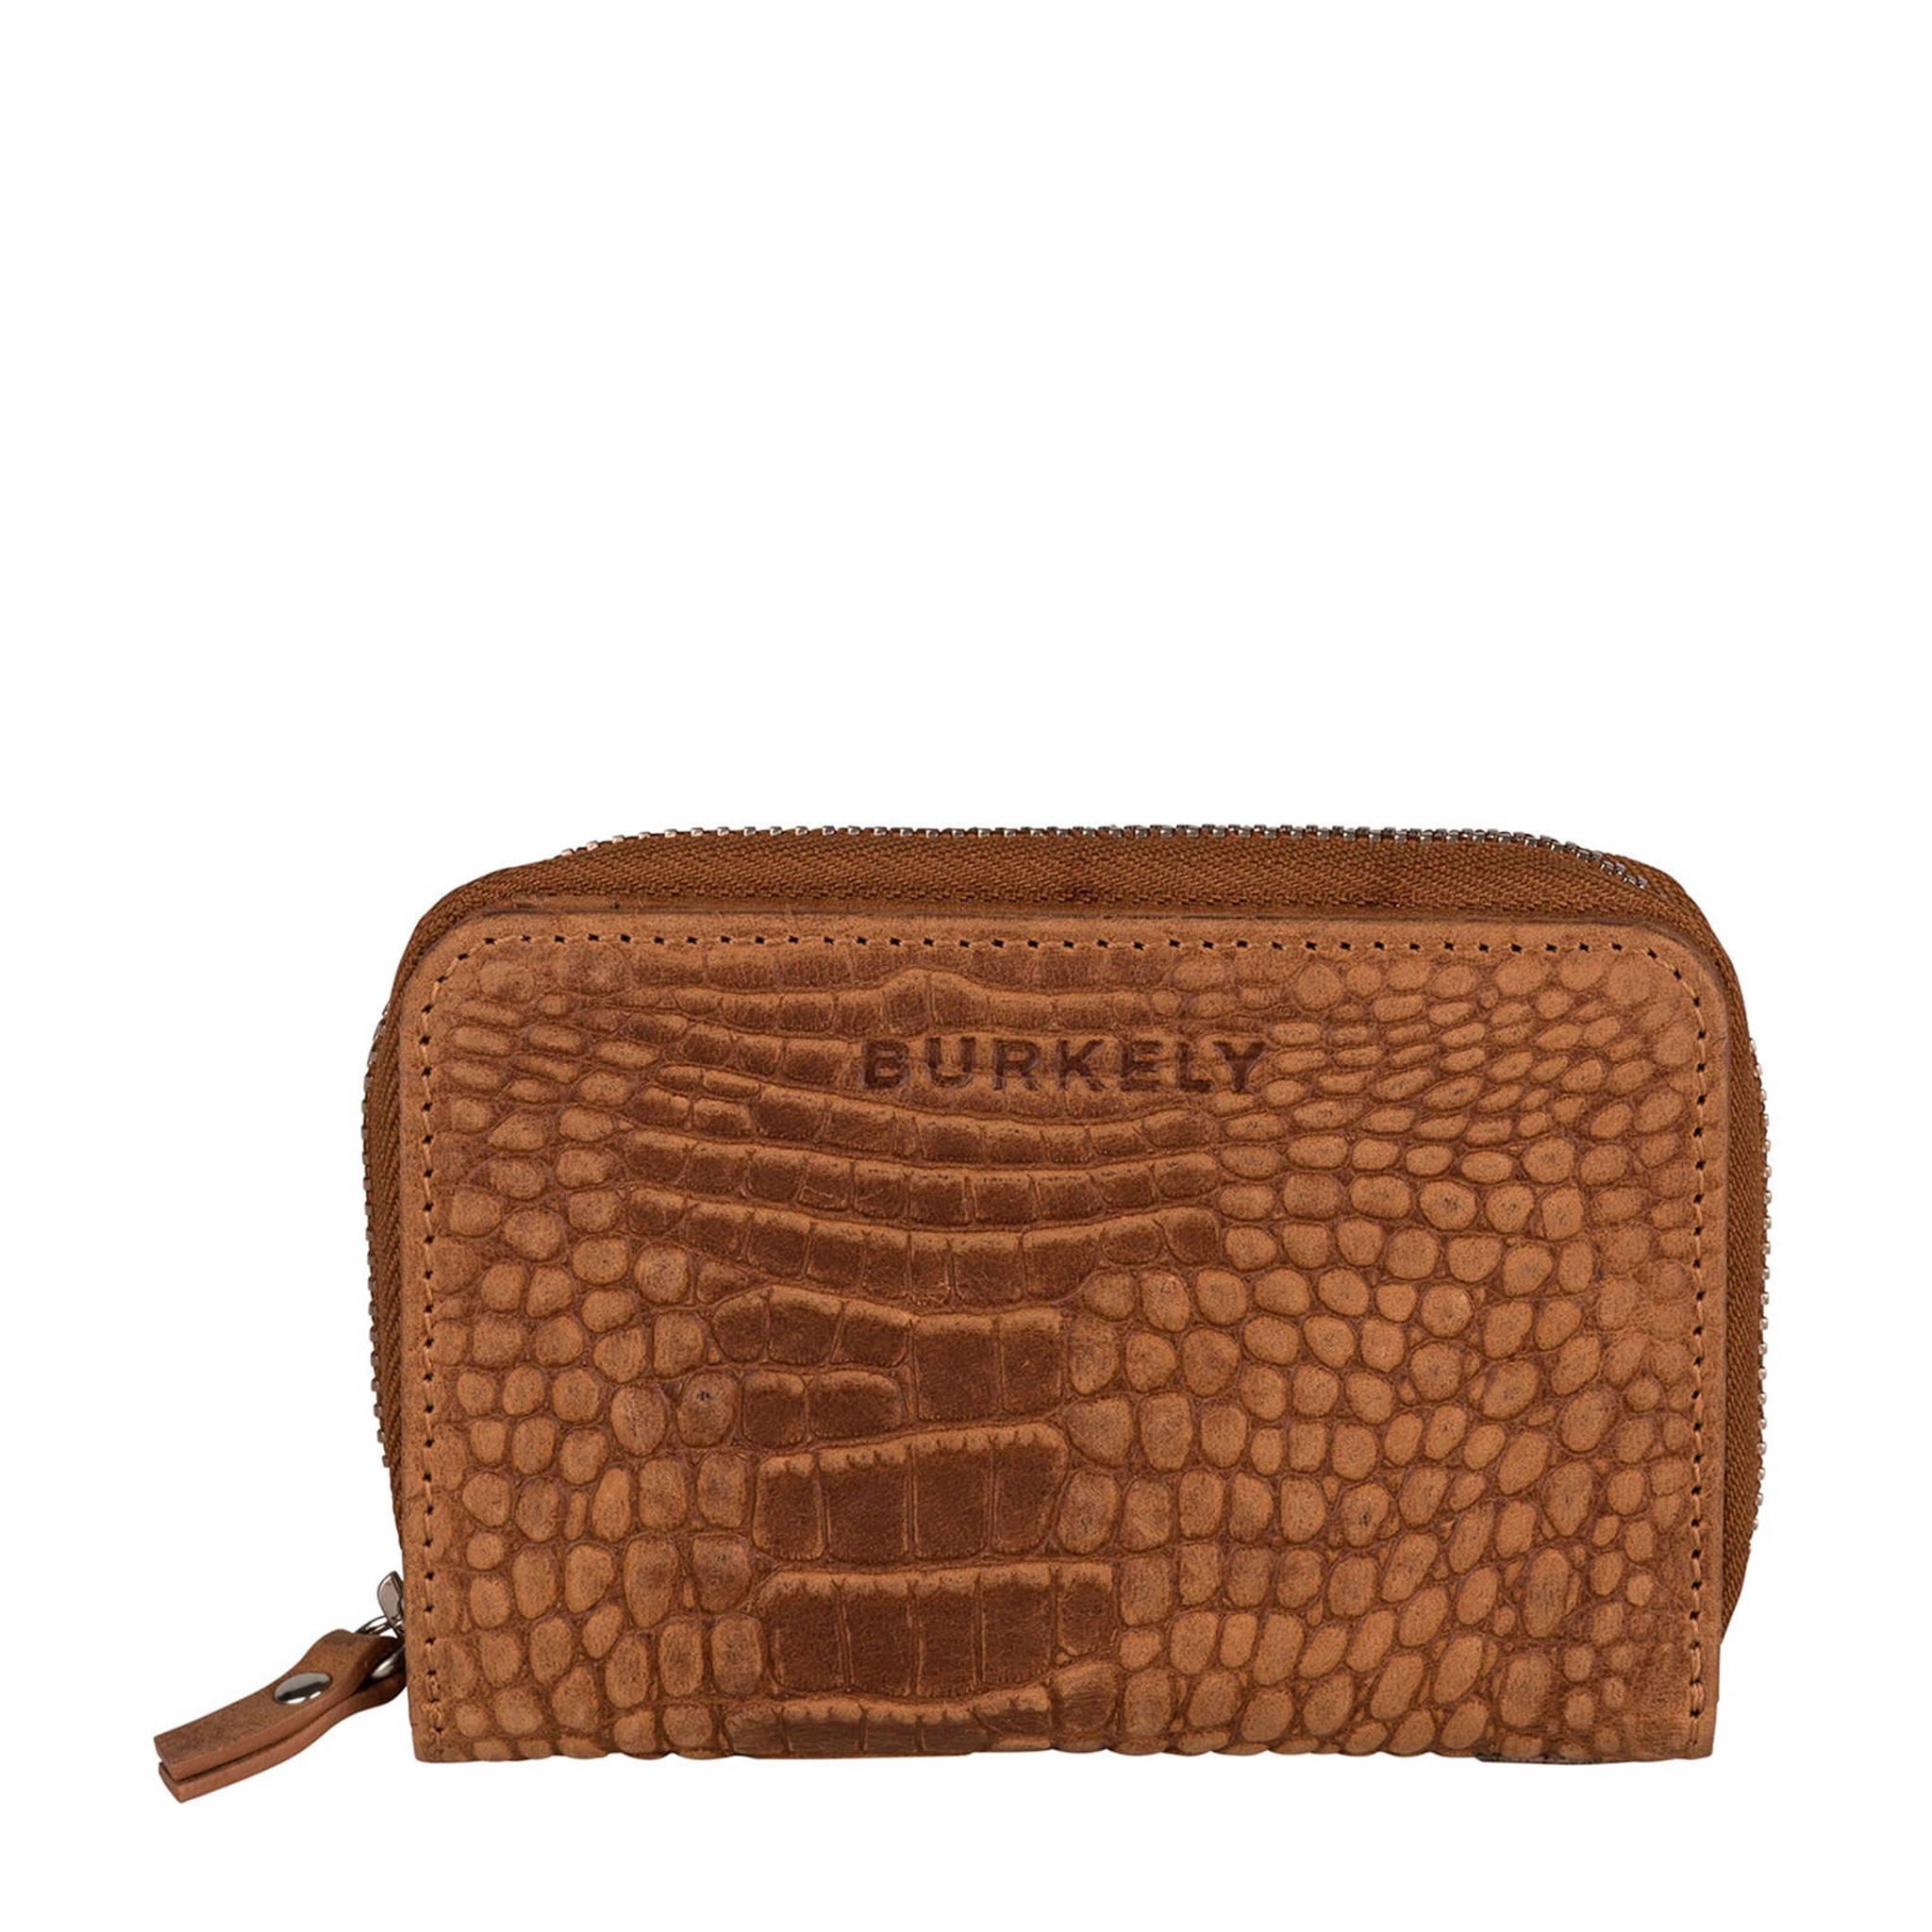 Burkely Leren Portemonnee.Burkely Leren Portemonnee About Ally Wallet S Cognac Wehkamp